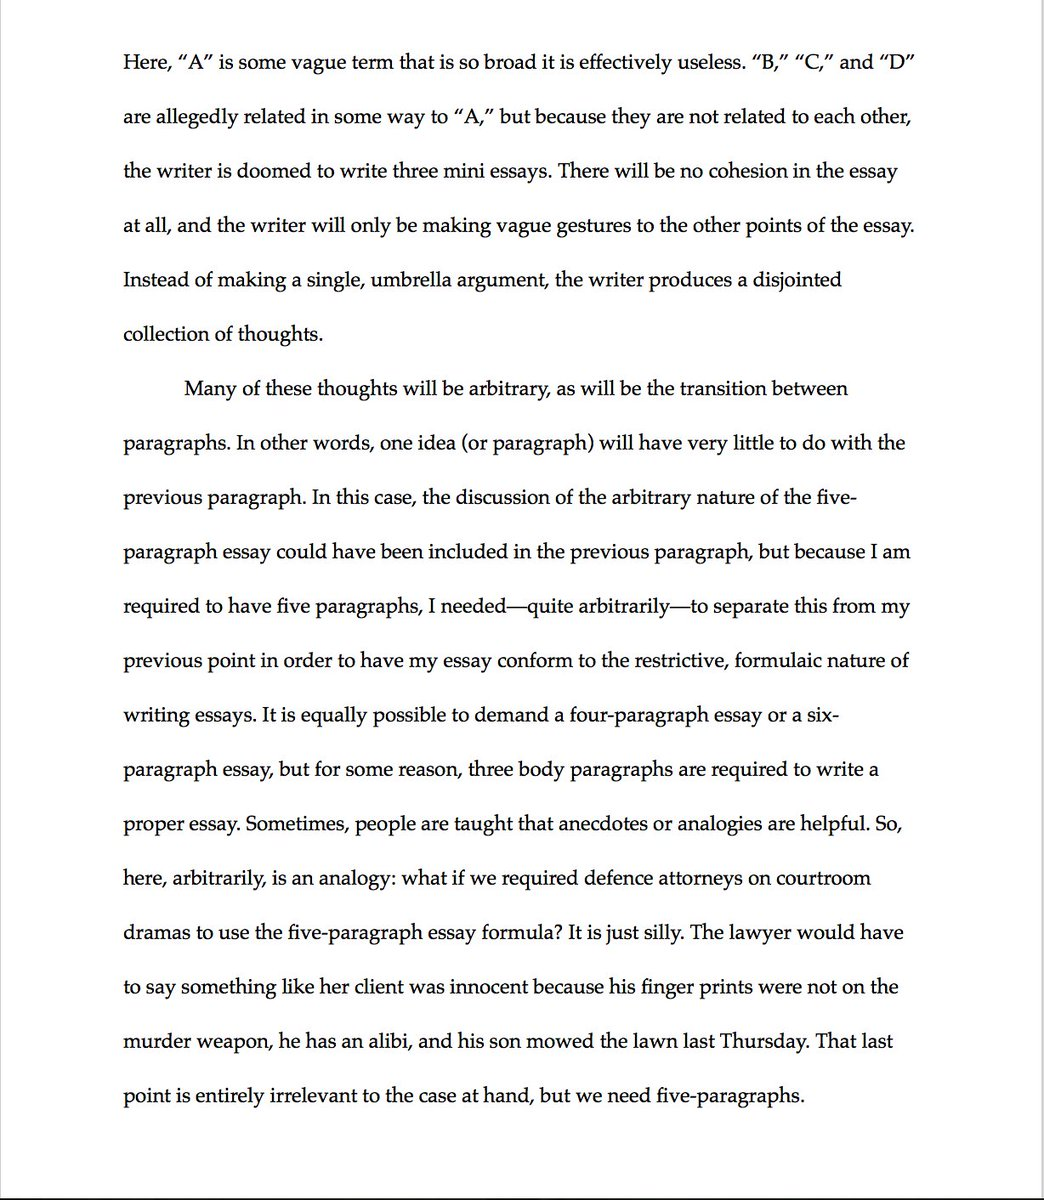 008 Essay Example How Many Paragraphs Are In Formidable A Argumentative Body Should Narrative Have Persuasive Full